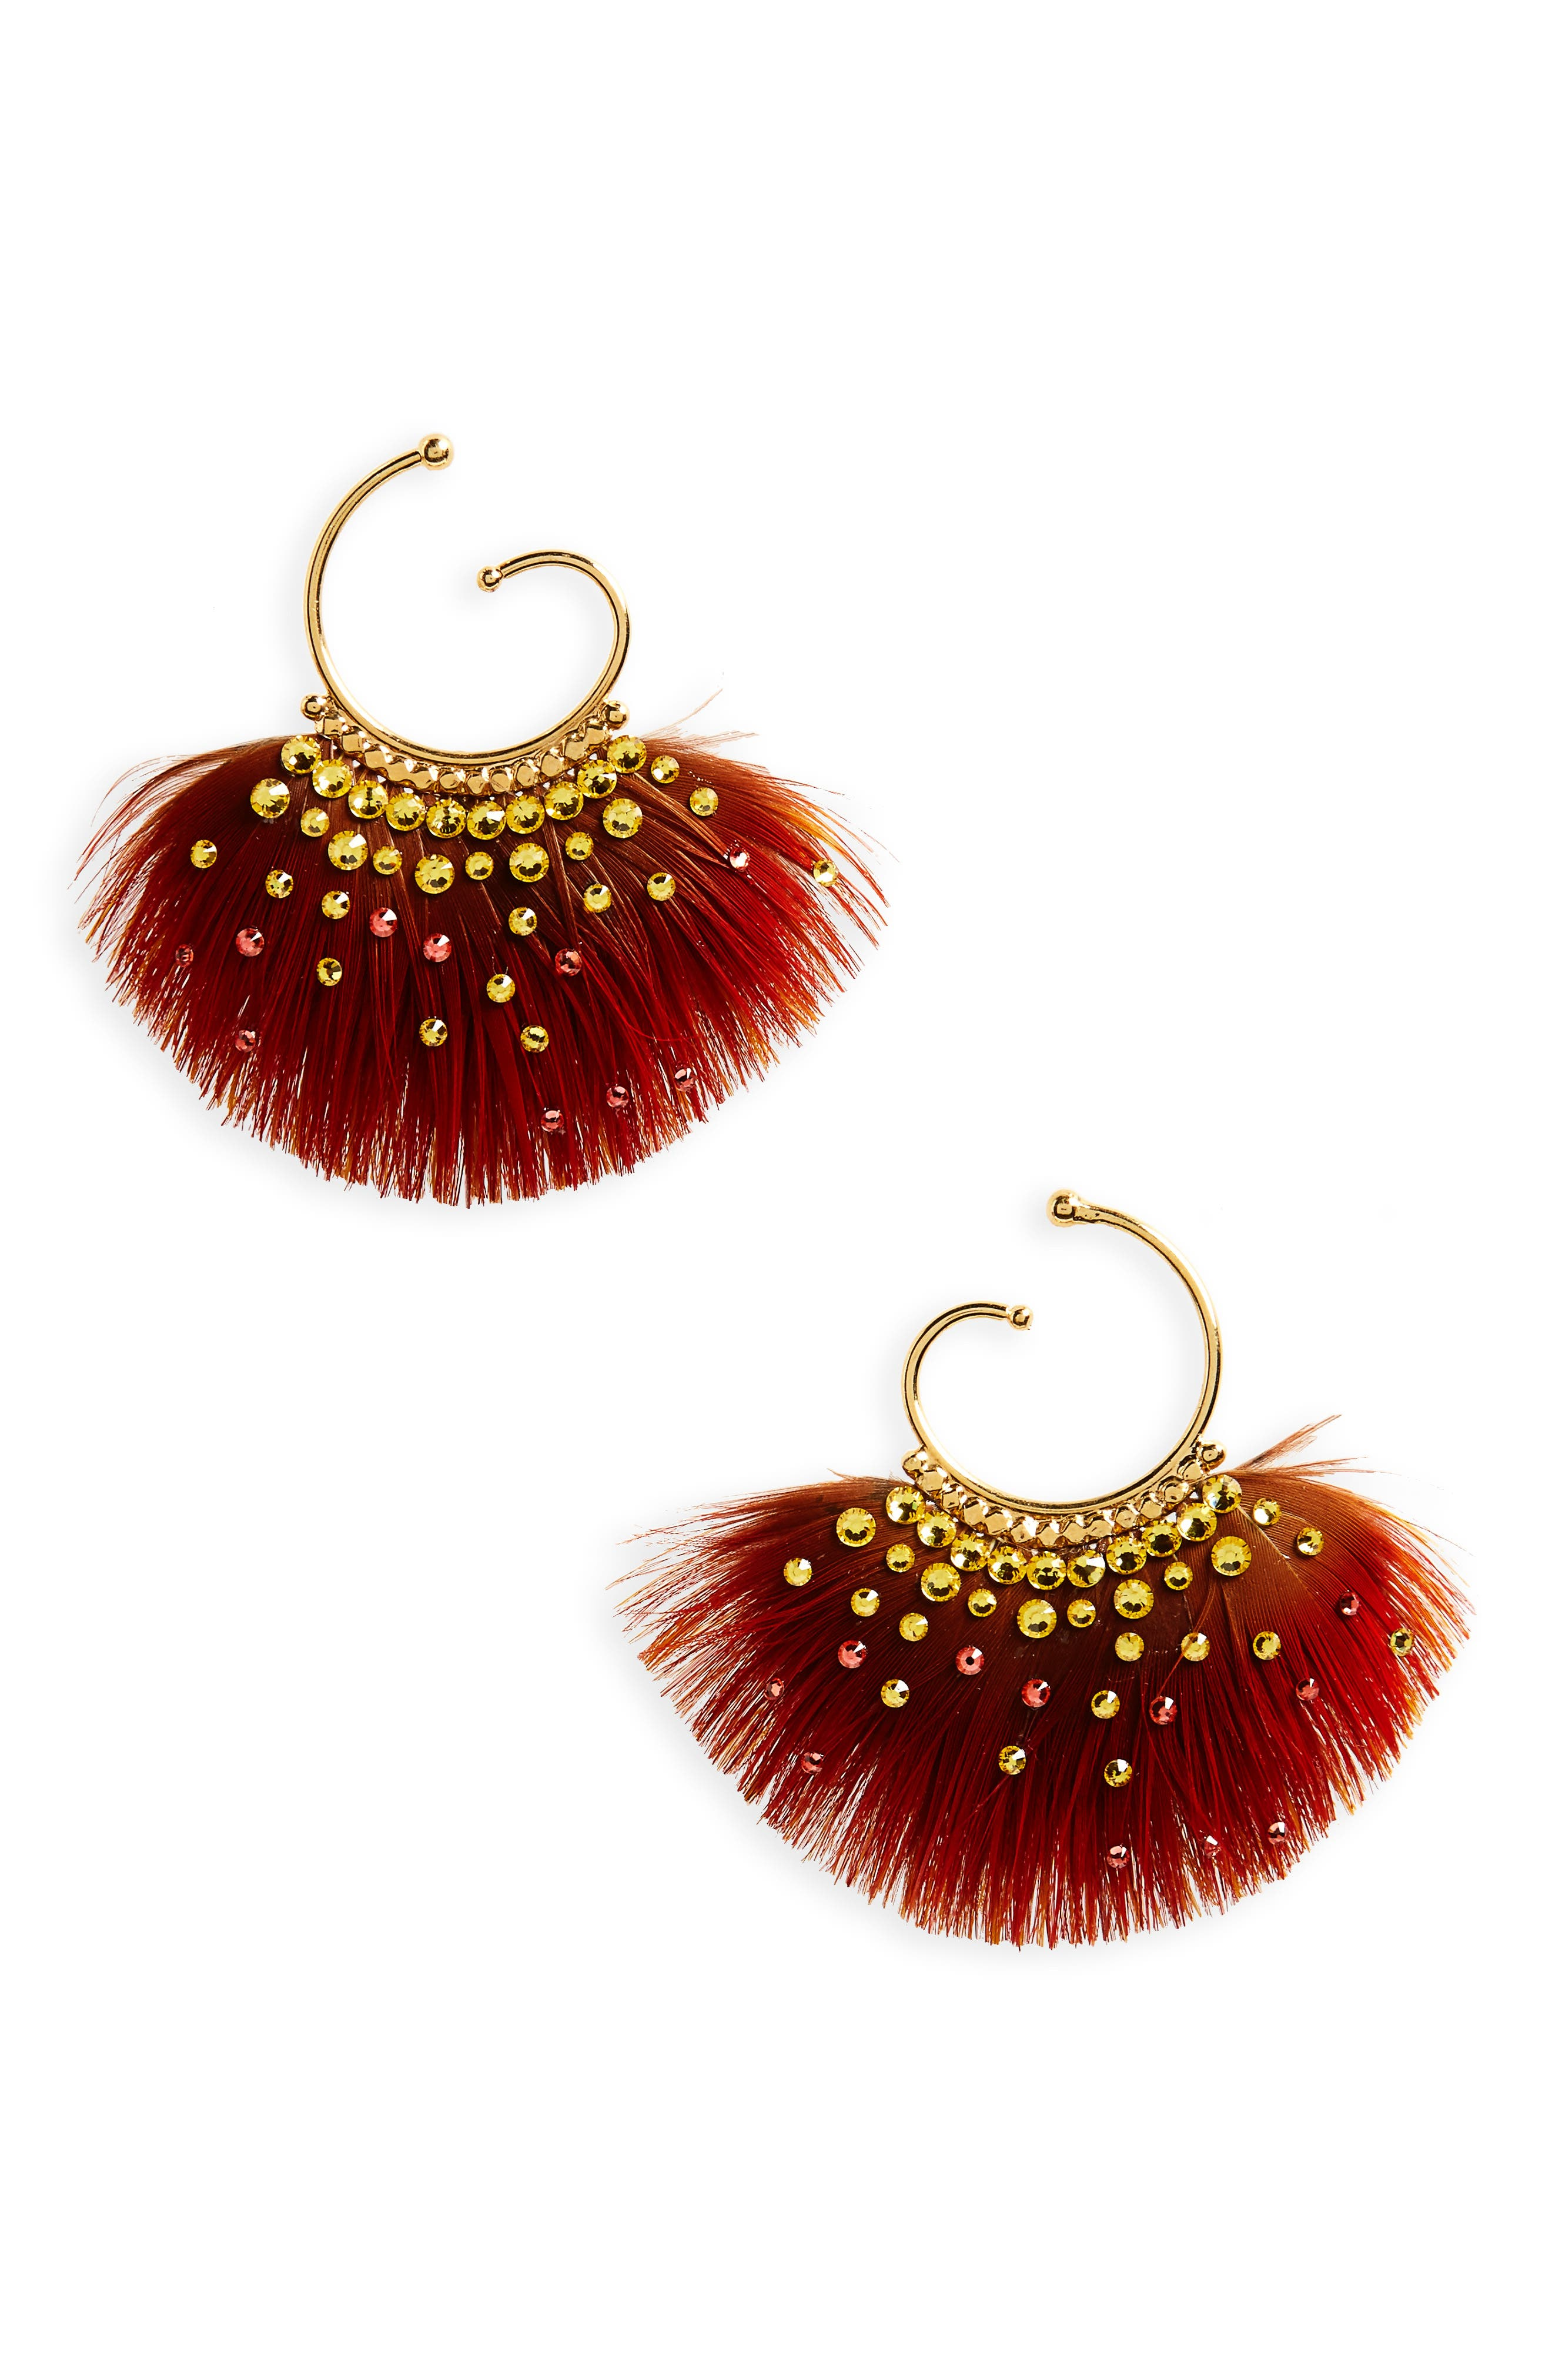 Buzios Small Feather Earrings,                         Main,                         color, 800